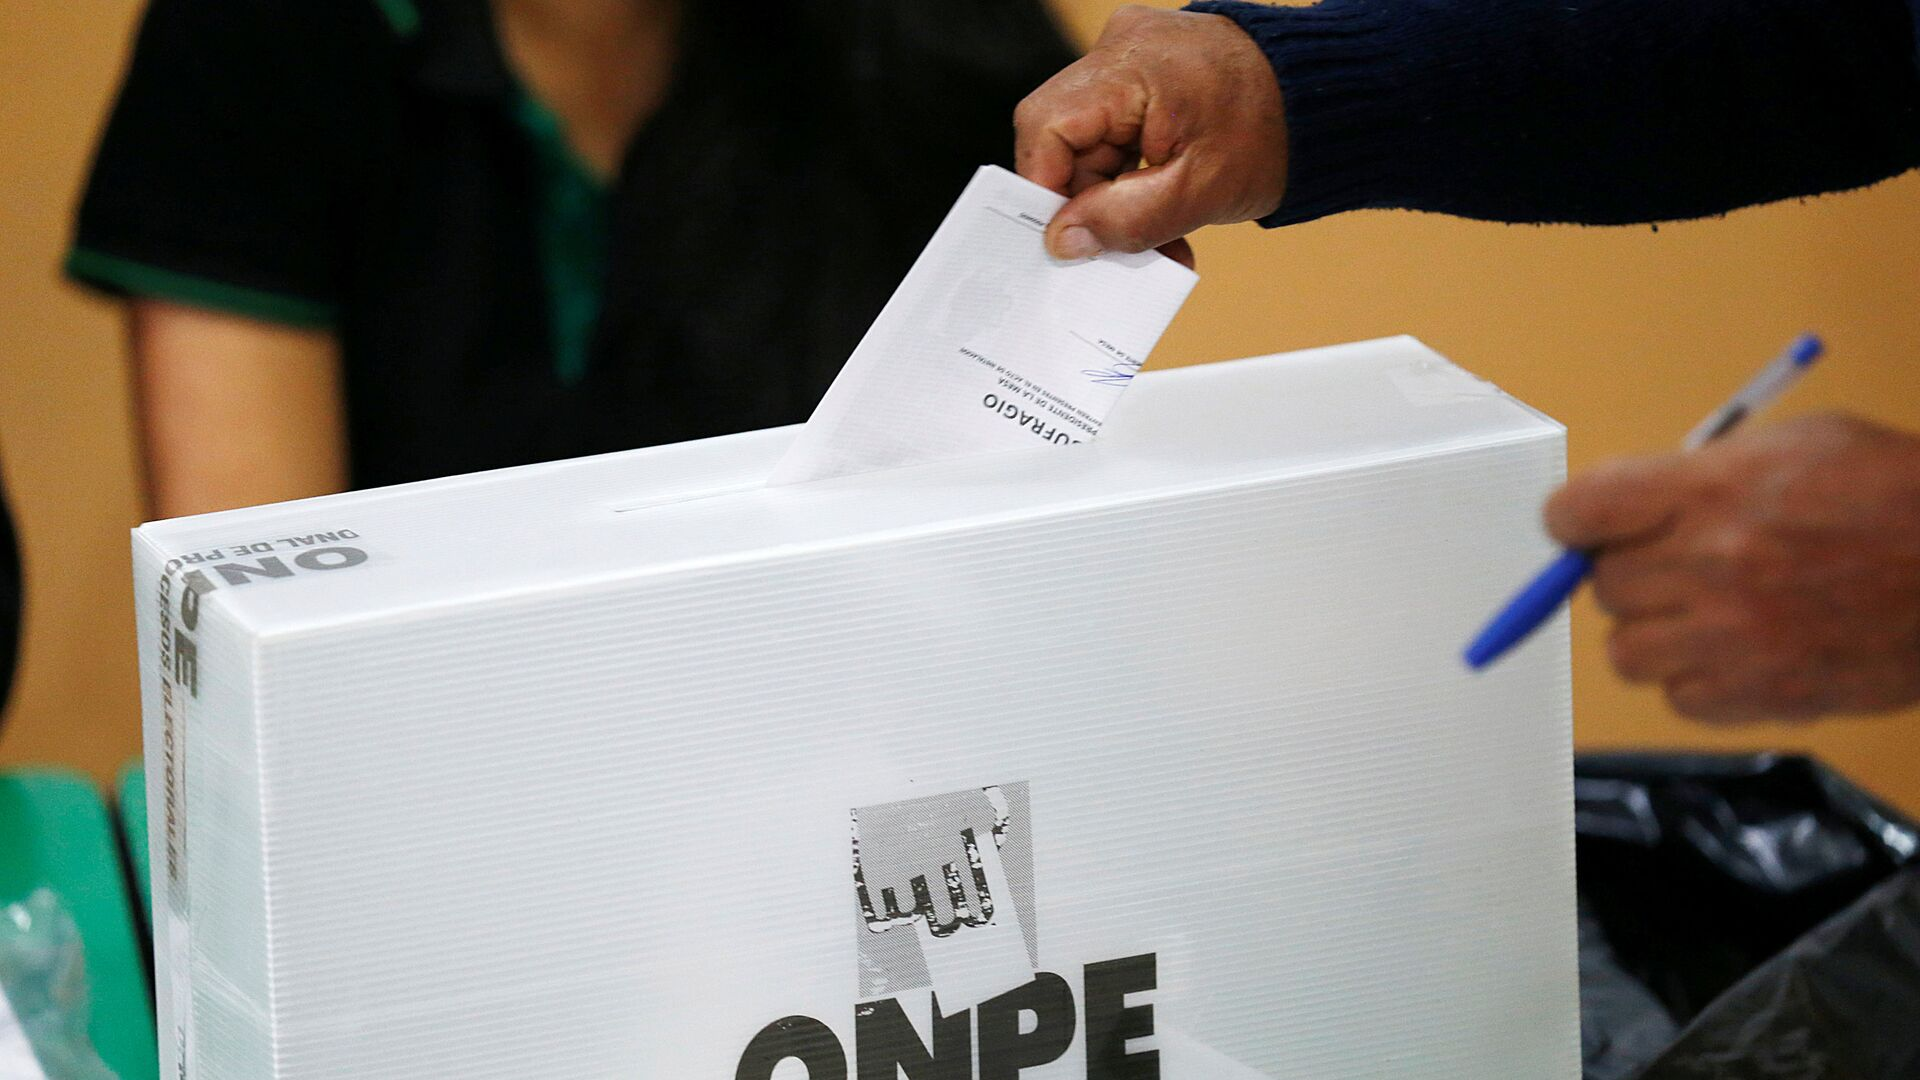 A man casts his ballot in Peru's presidential election at a voting station in Lima, Peru - Sputnik Mundo, 1920, 26.05.2021